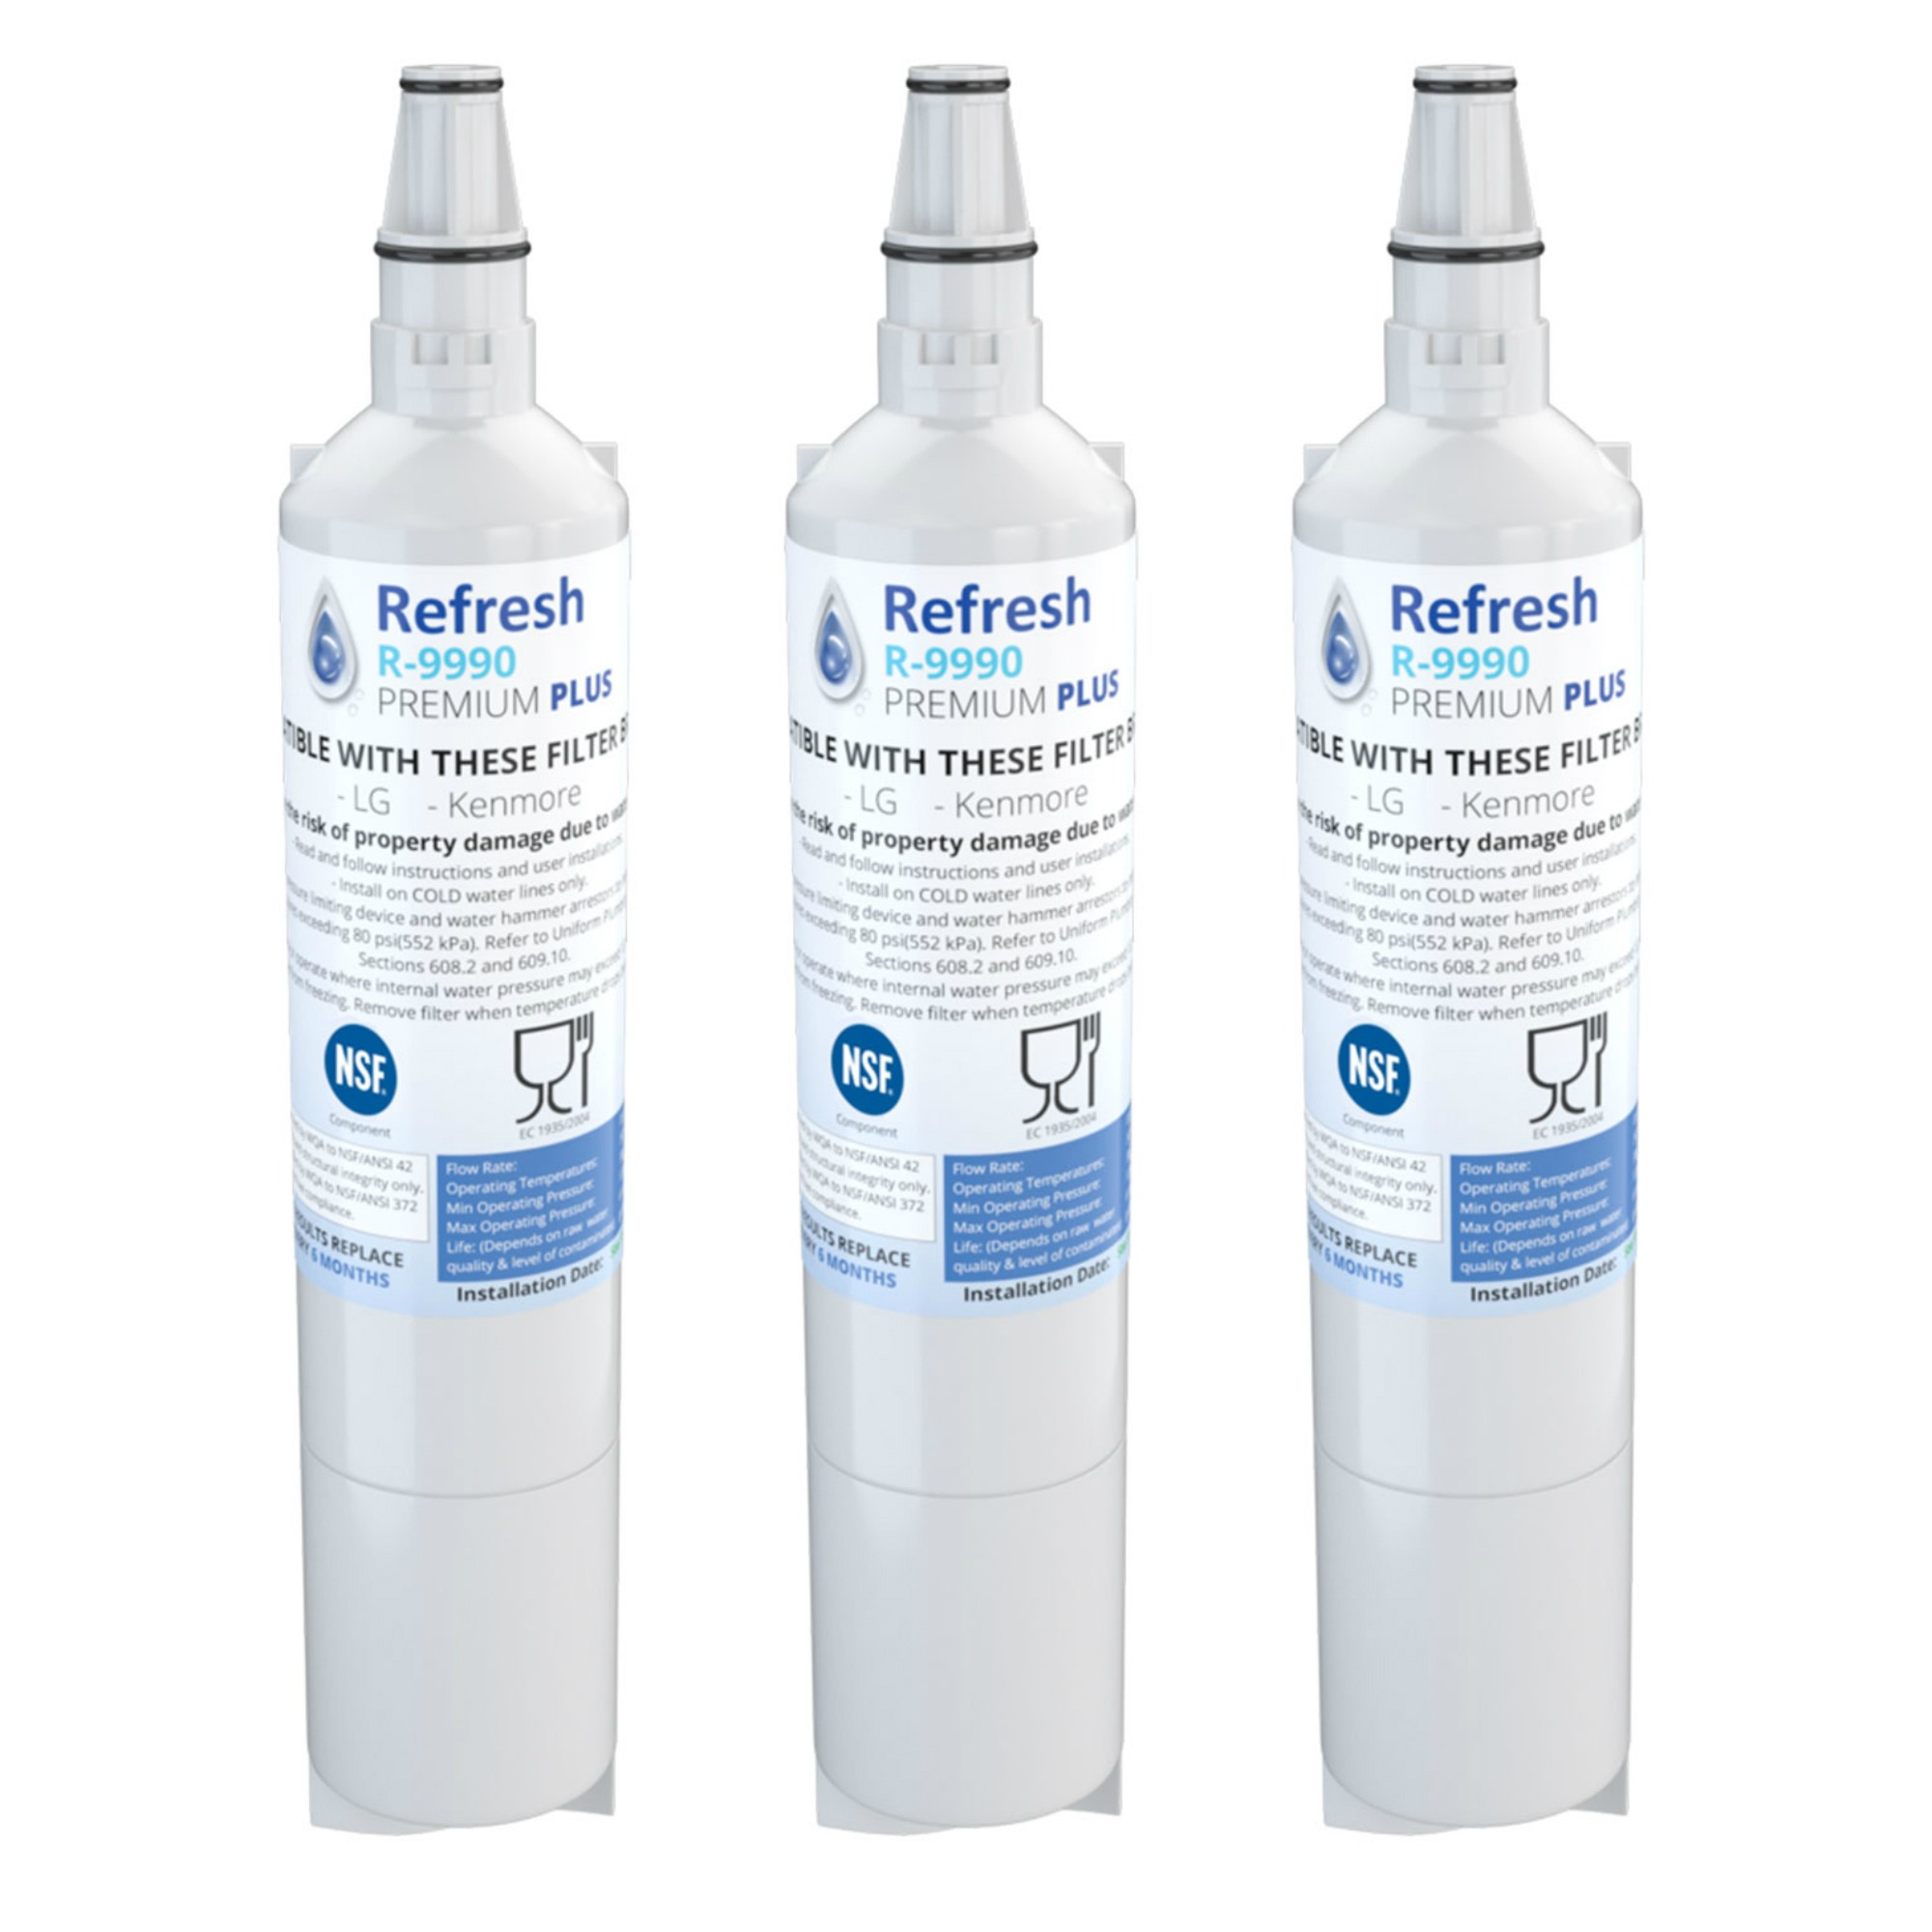 Refresh LT600P Replacement for LG LT600P 5231JA2006A 5231JA2006B Refrigerator Water Filter (3 Pack)